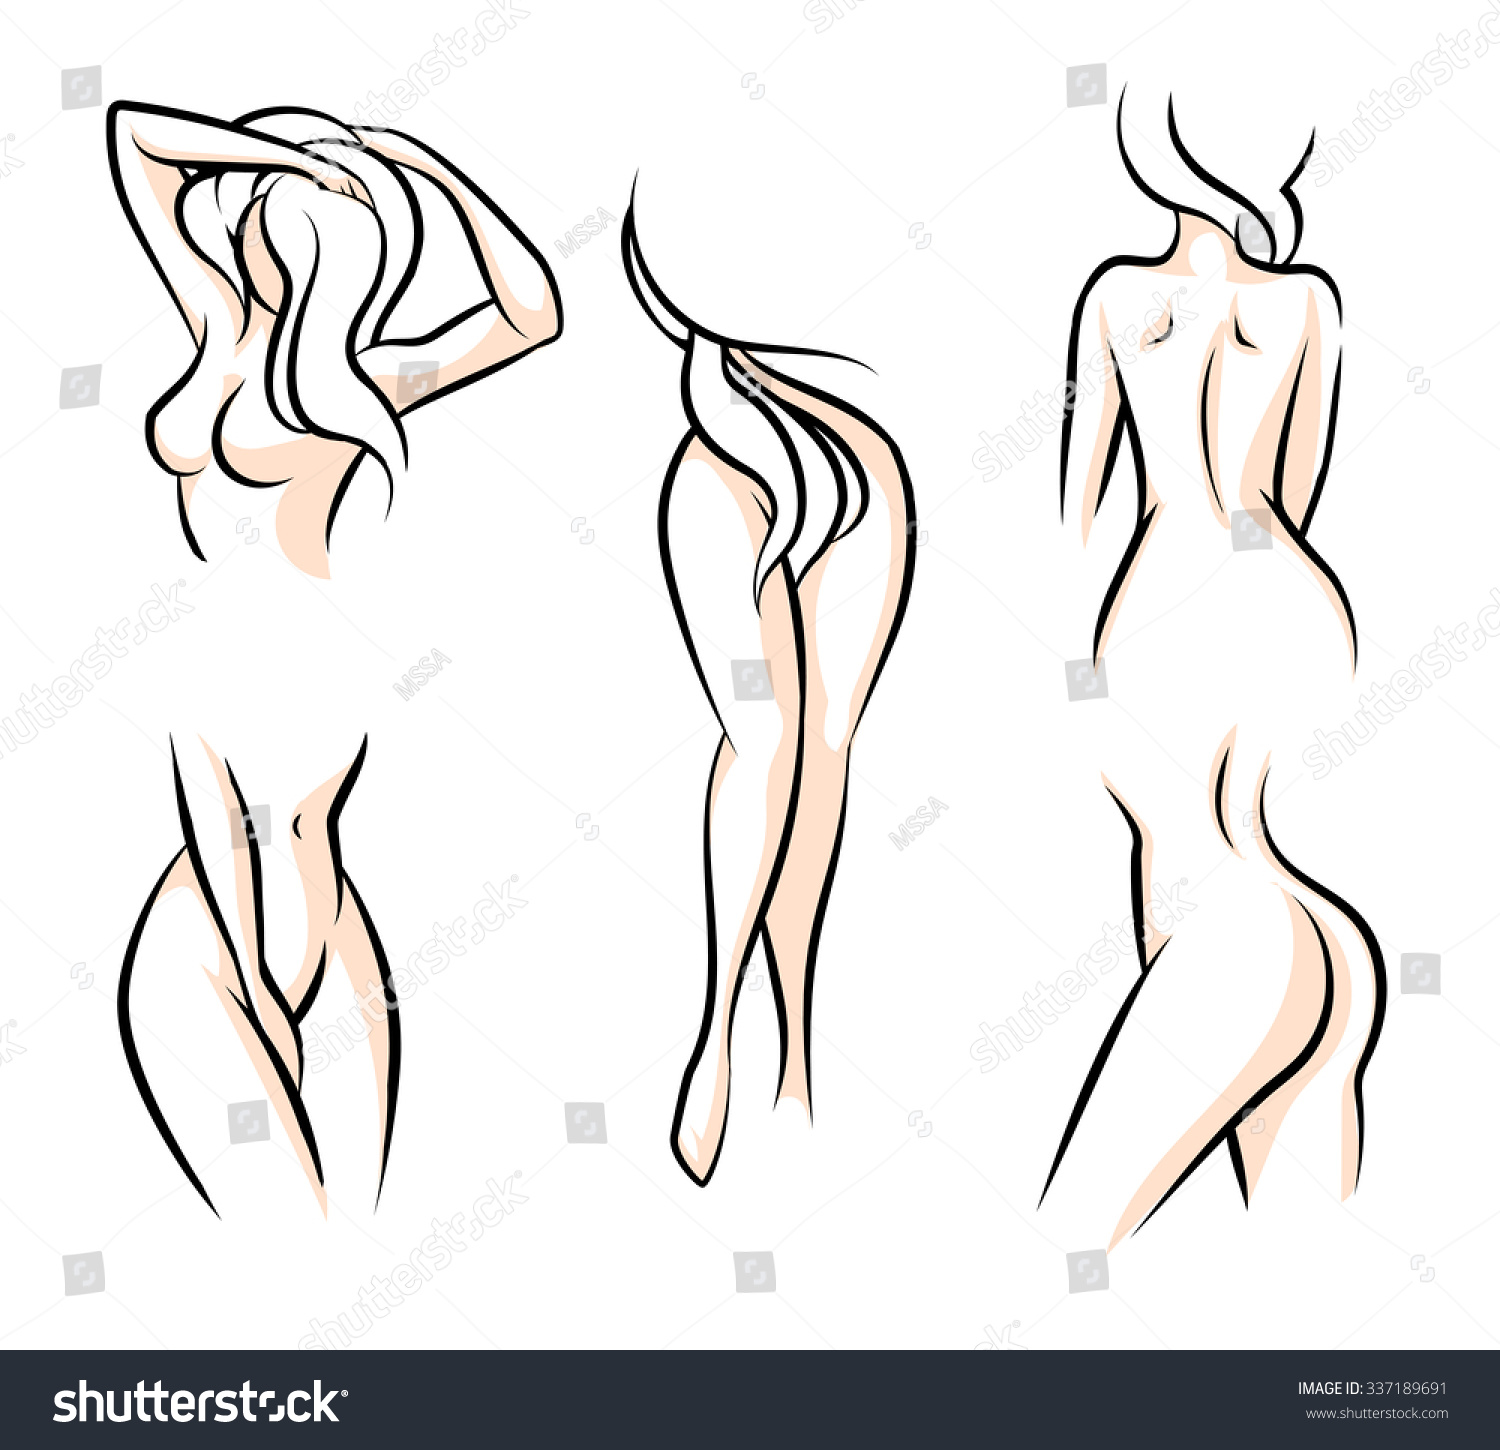 female body parts waist attractive woman stock vector 337189691, Cephalic Vein